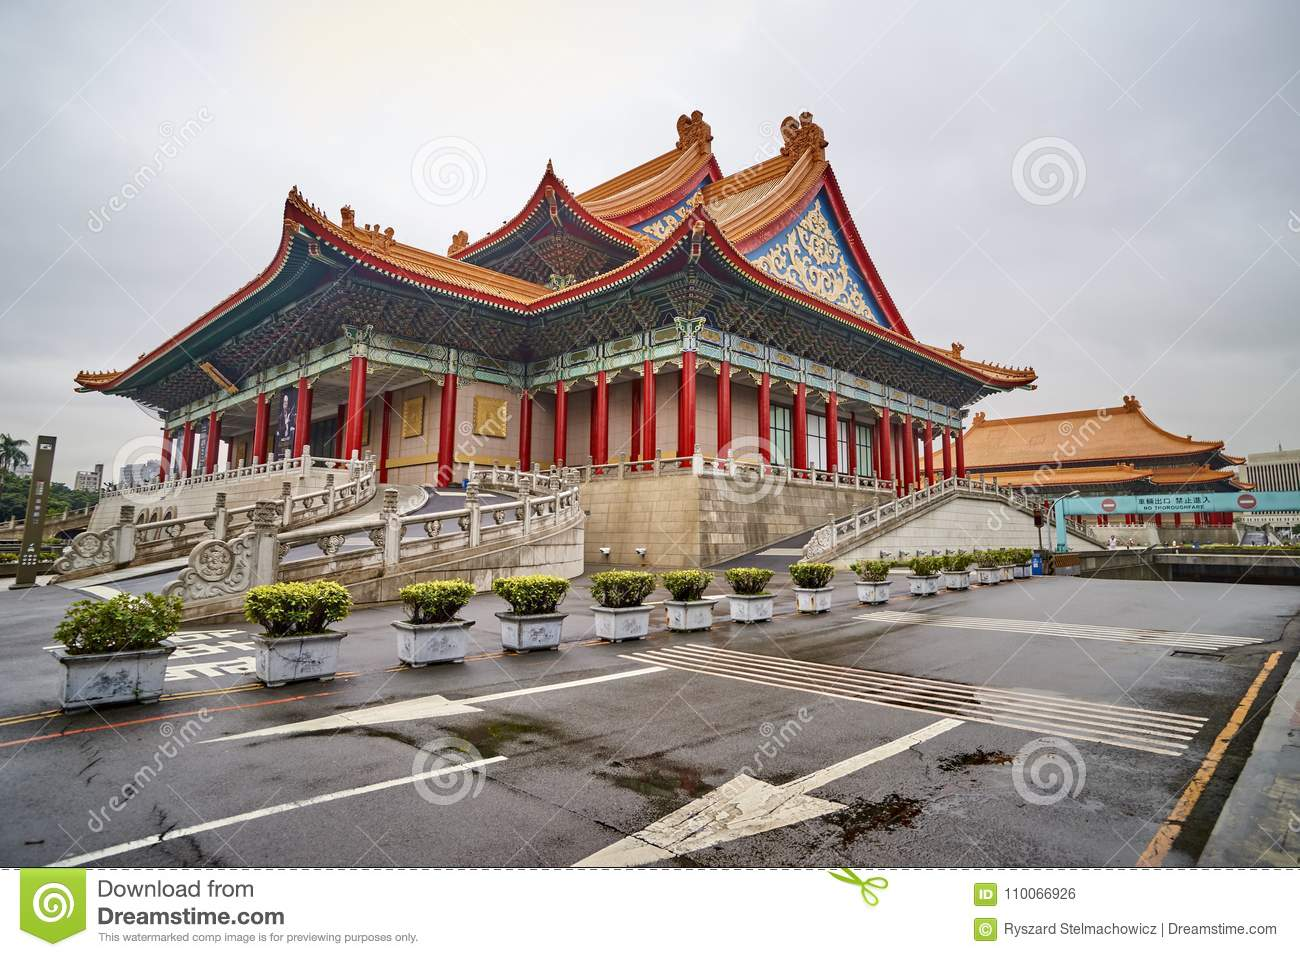 TAIPEI, TAIWAN - NOVEMBER 14, 2017: National Theater and Concert